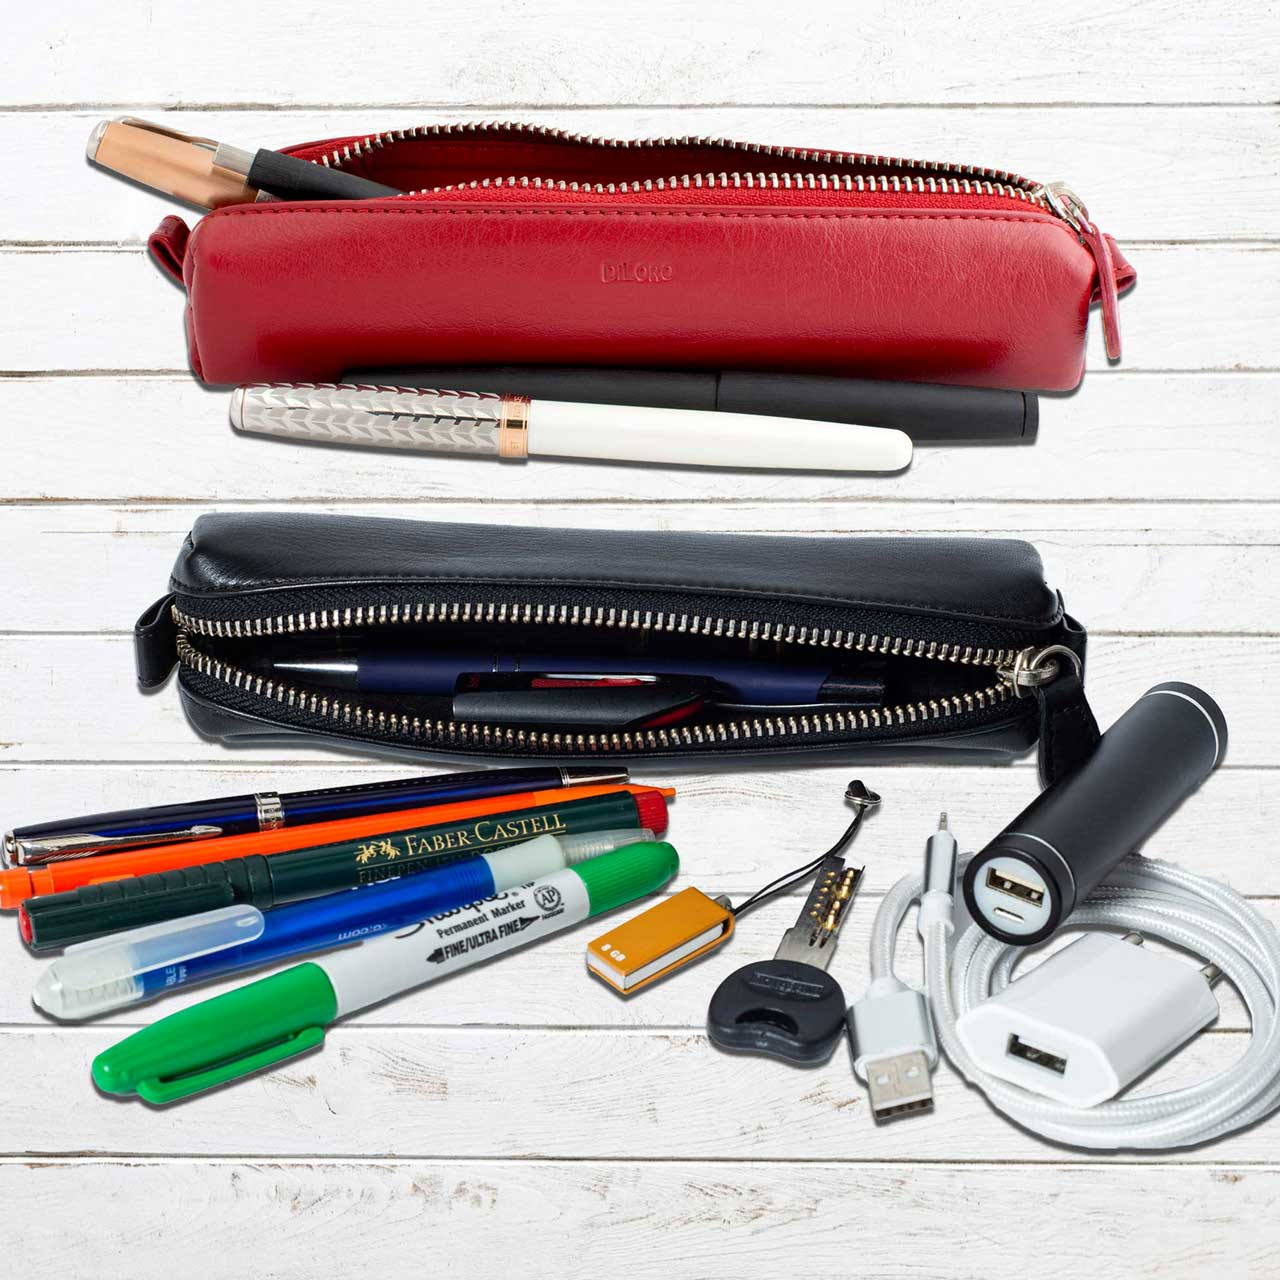 DiLoro Pen & Pencil Case: Venetian Red and Black YKK zippered pencil, pen case made from top quality, full grain nappa leather. Ideal for when you travel to keep your favorite pen, pencils, fountain pen, calligraphy pens, gel pens, stylus pen protected from getting scratched up